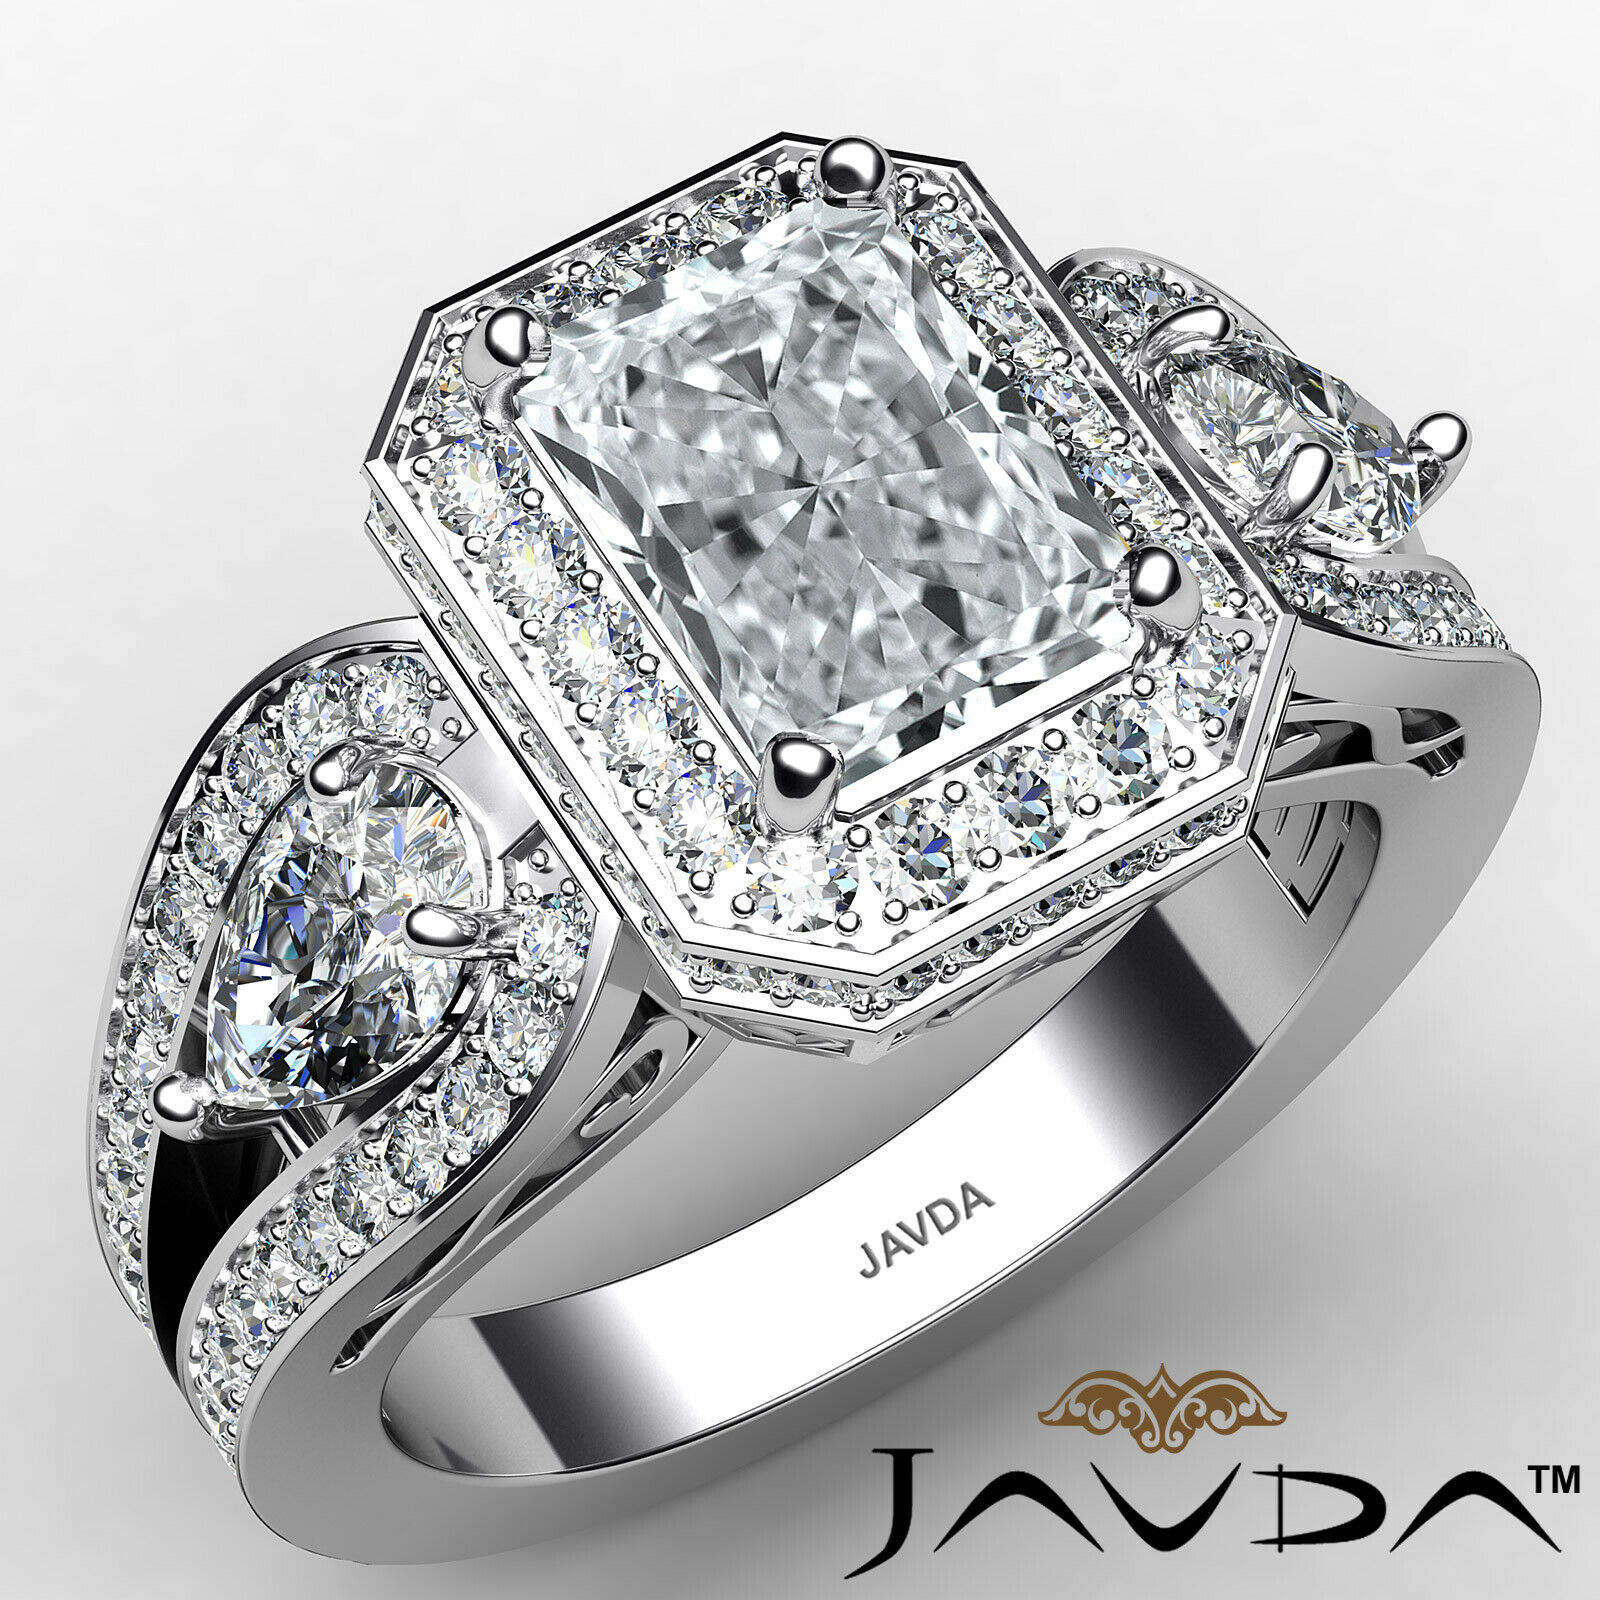 Halo Radiant Diamond Engagement Ring GIA Certified I Color & SI1 clarity 2.75ctw